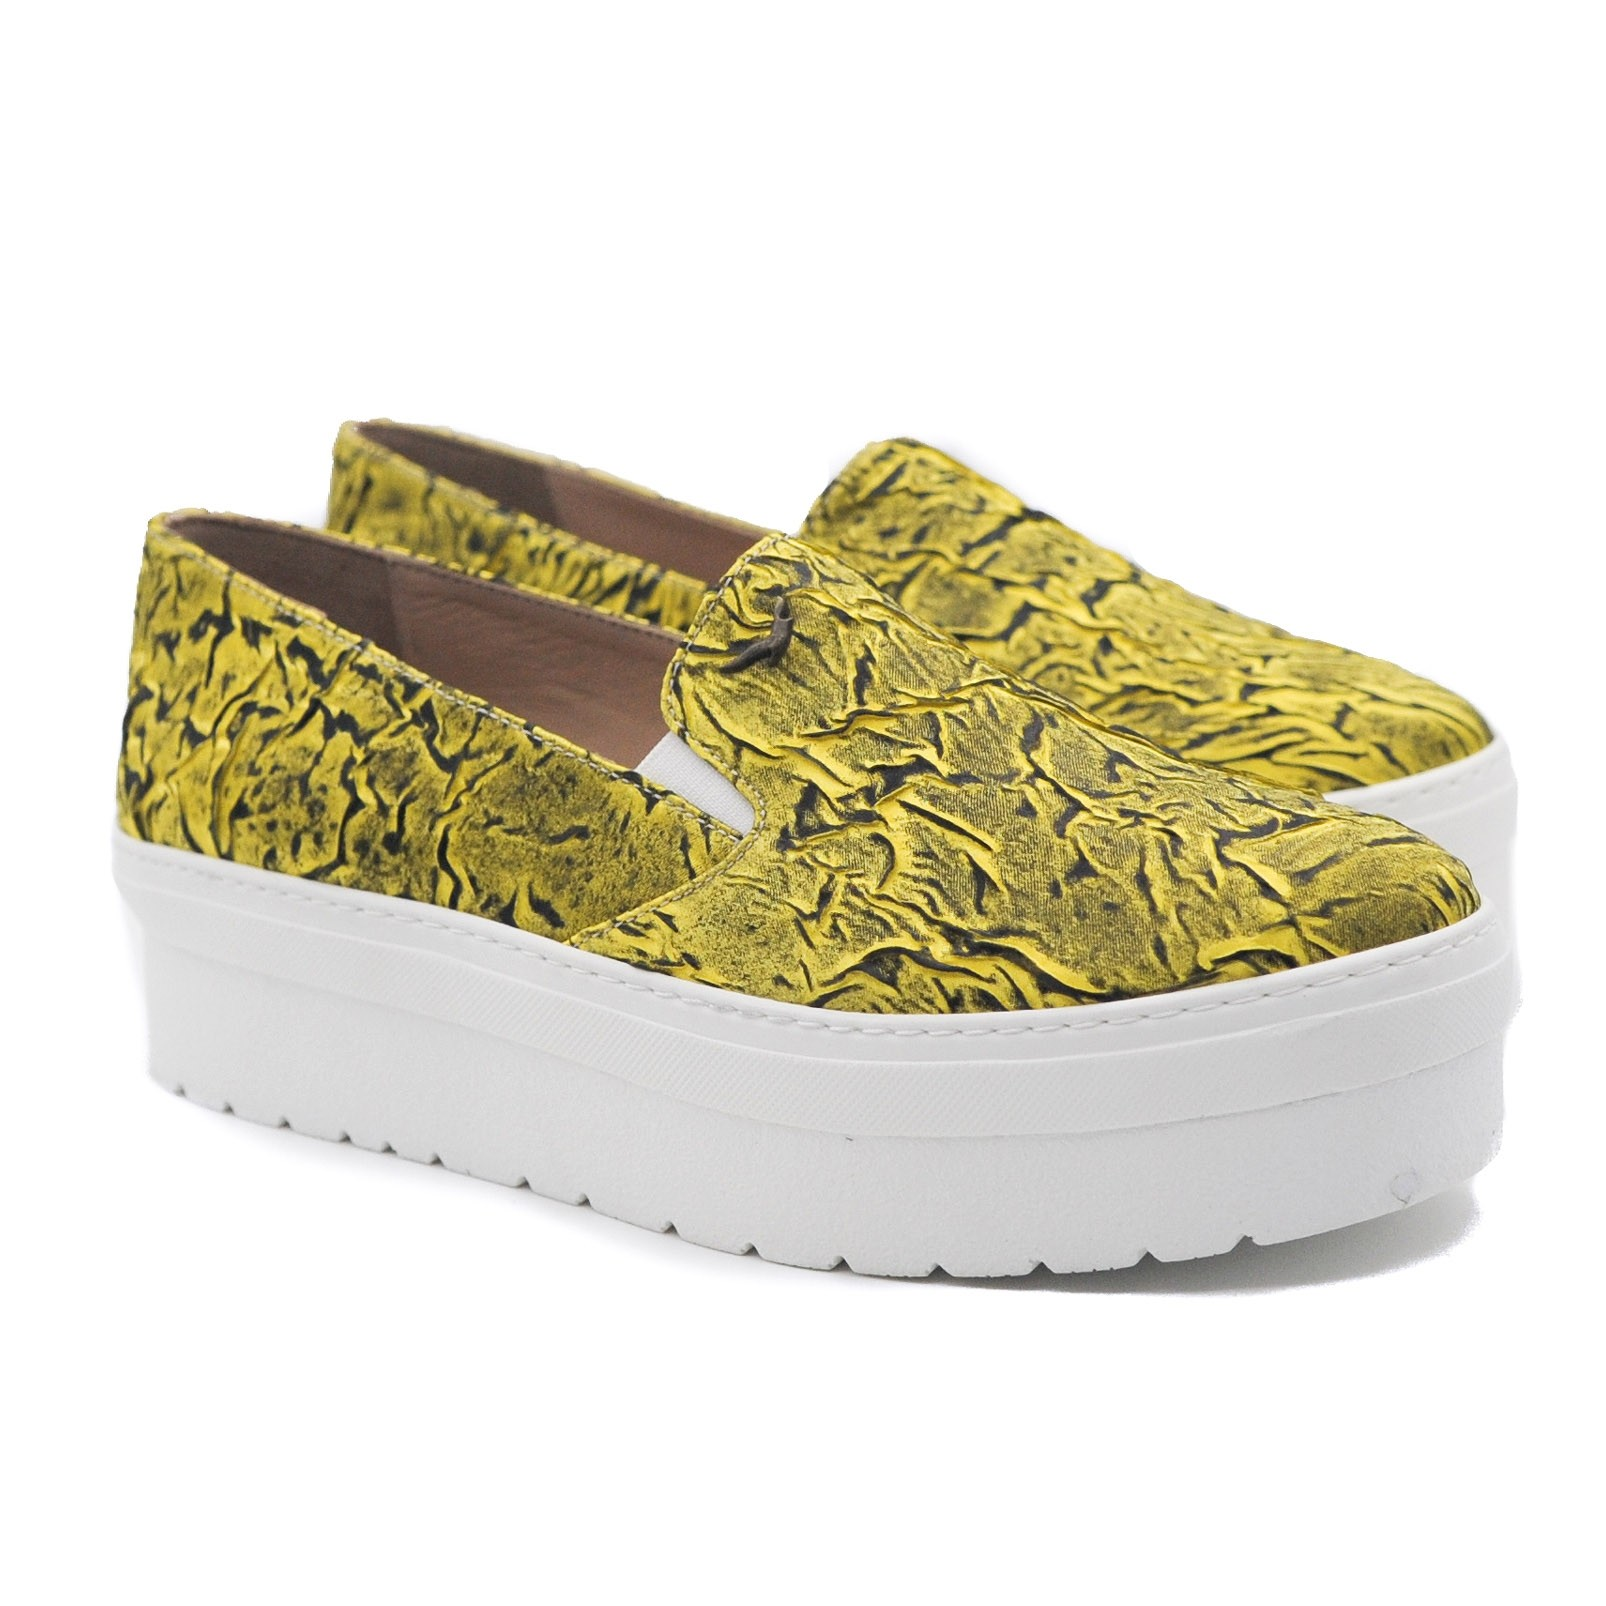 Art Goya Ladies' Yellow and Black Slip on Platform Loafers with Textured Upper